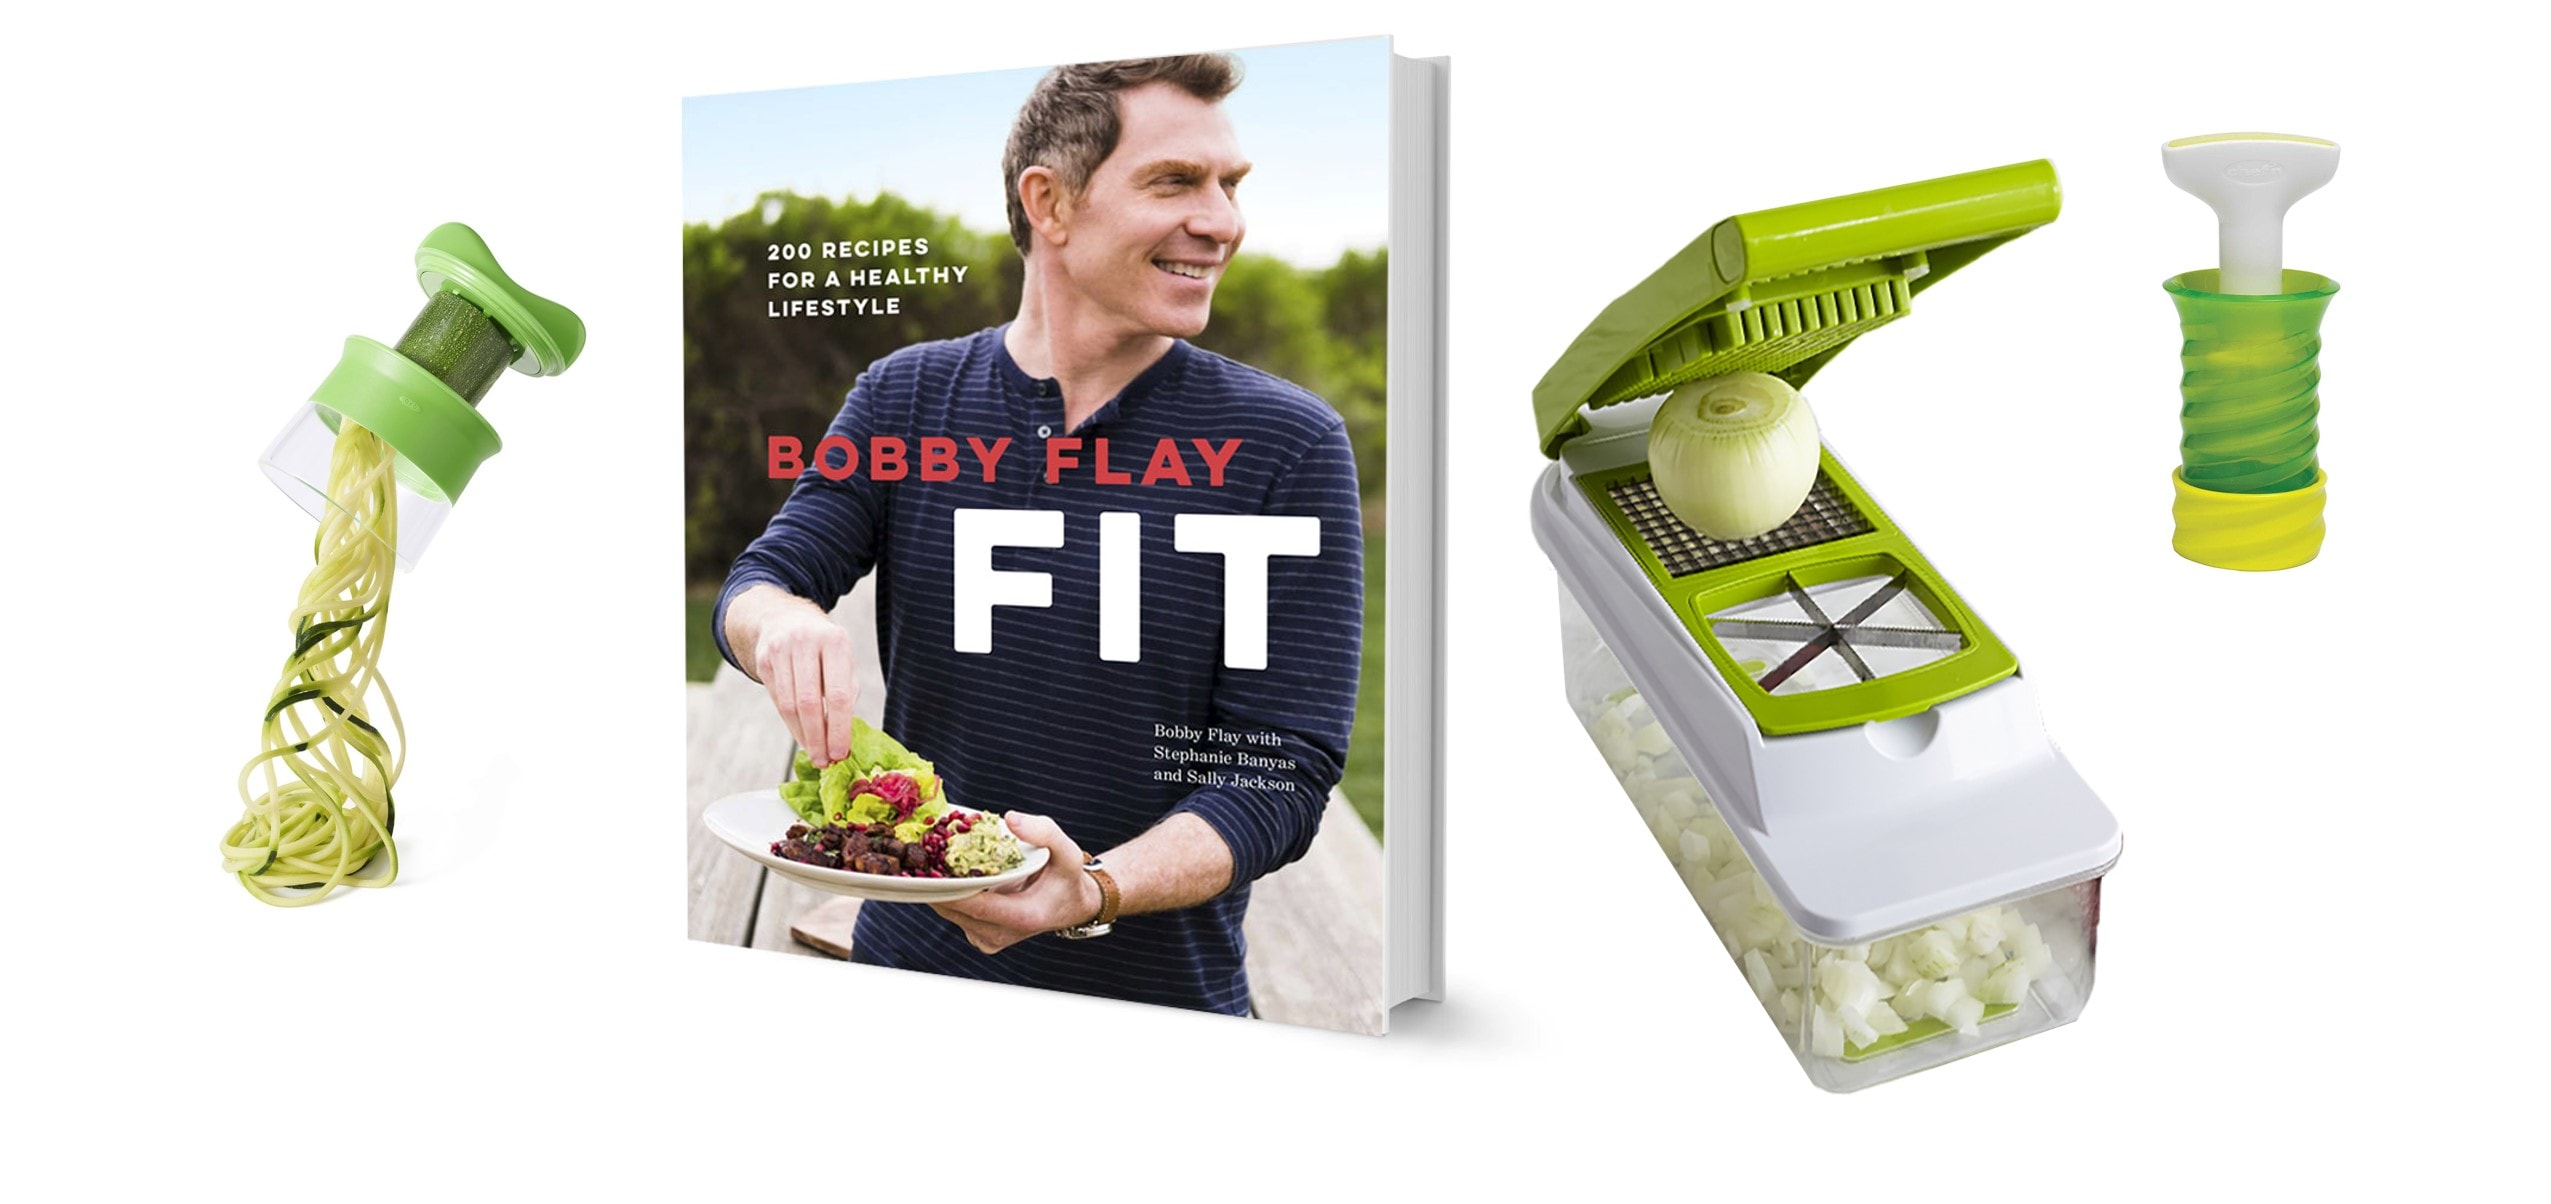 BobbyFlayFit-KitchenToolsPrizing